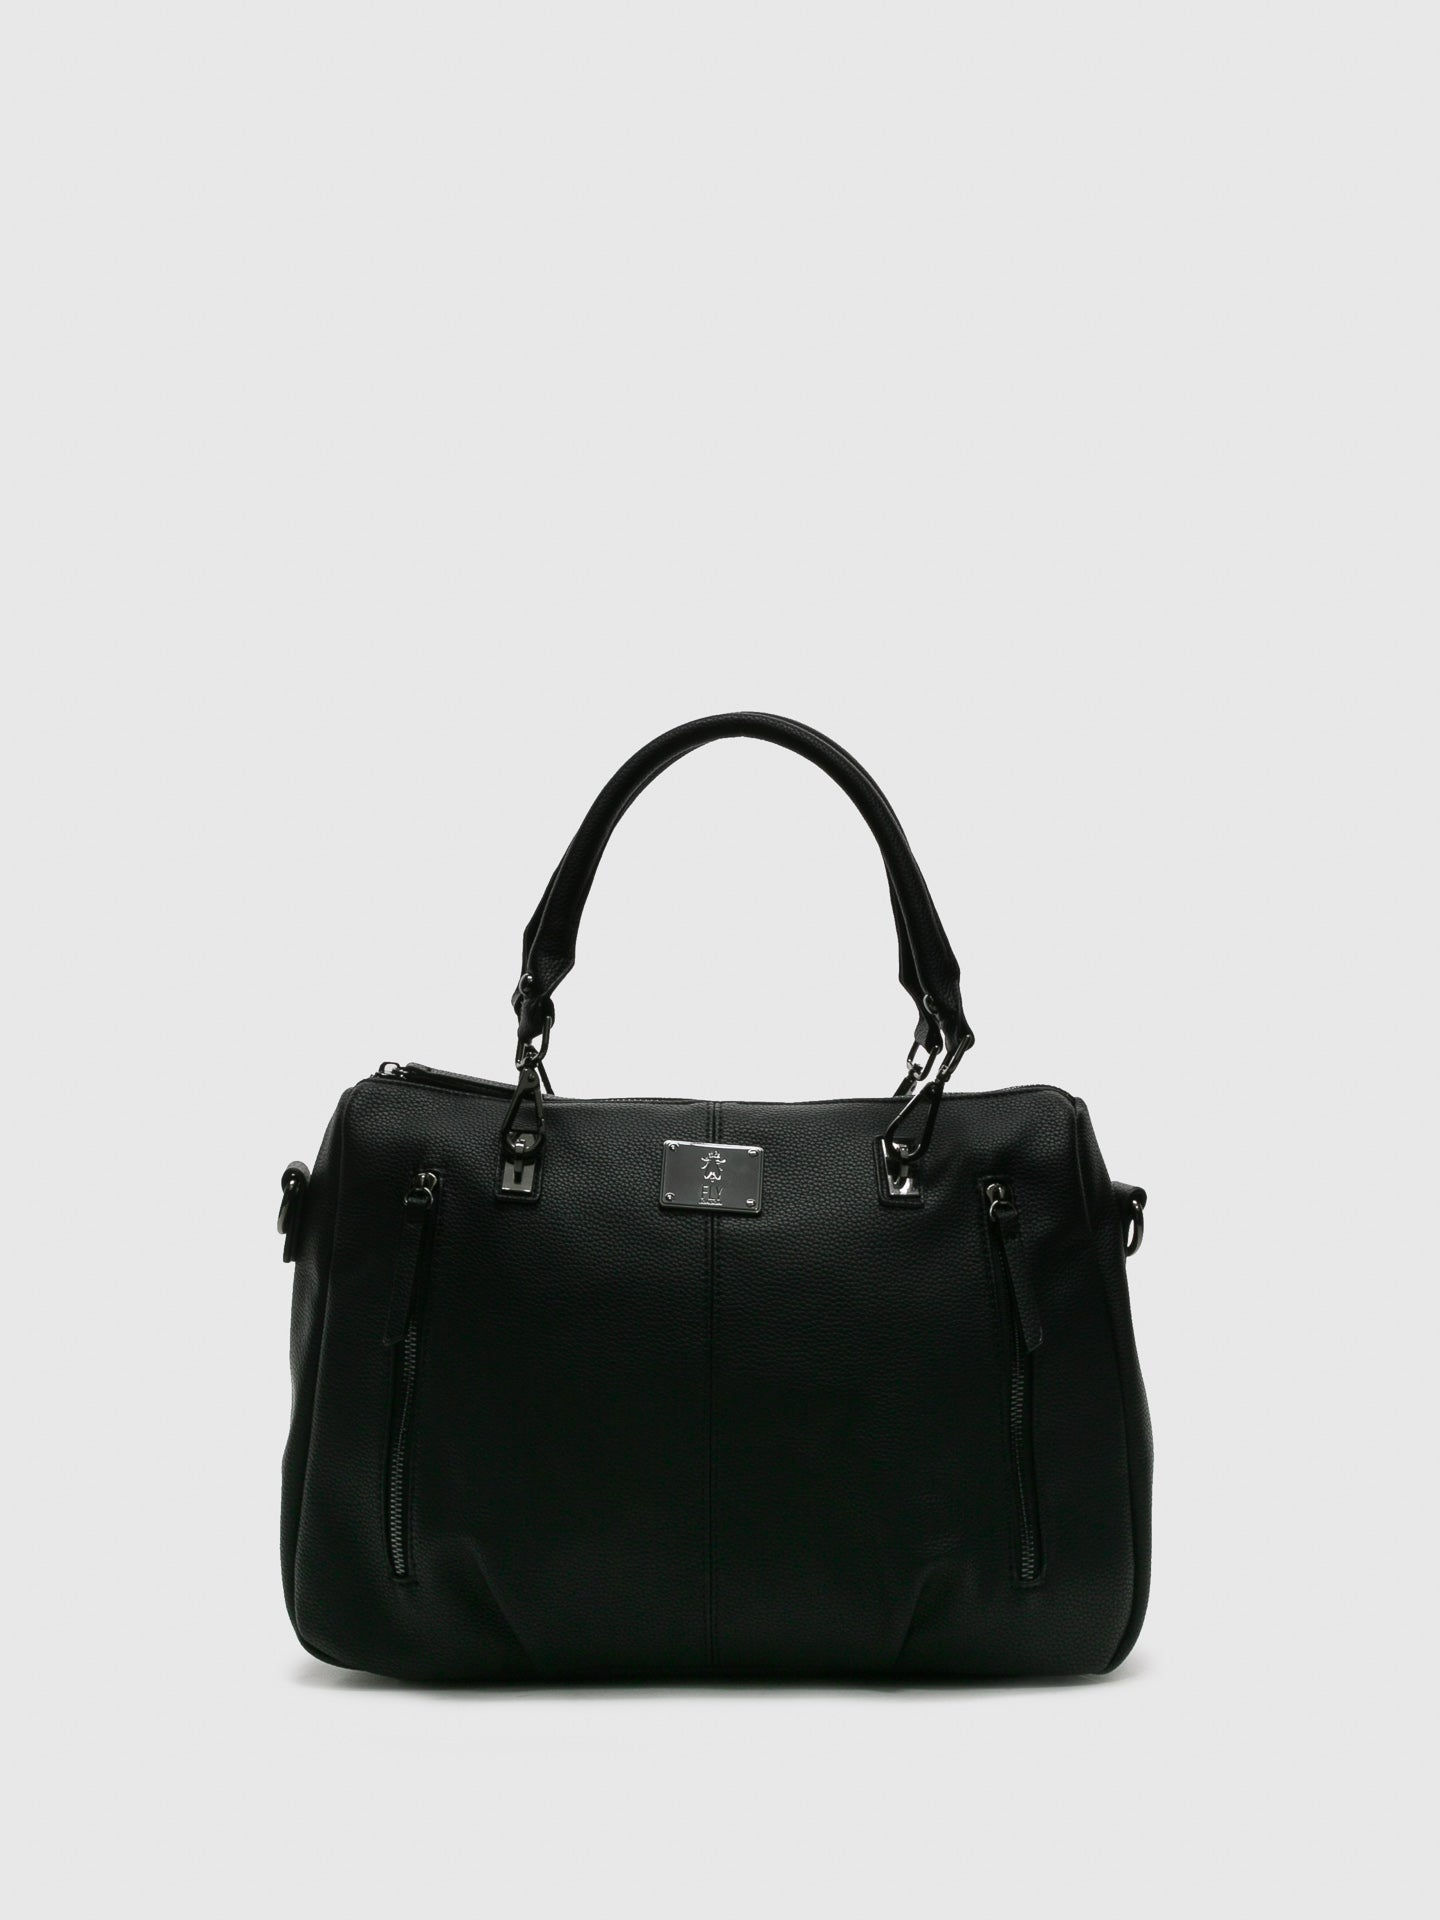 Fly London Black Shoulder Bag